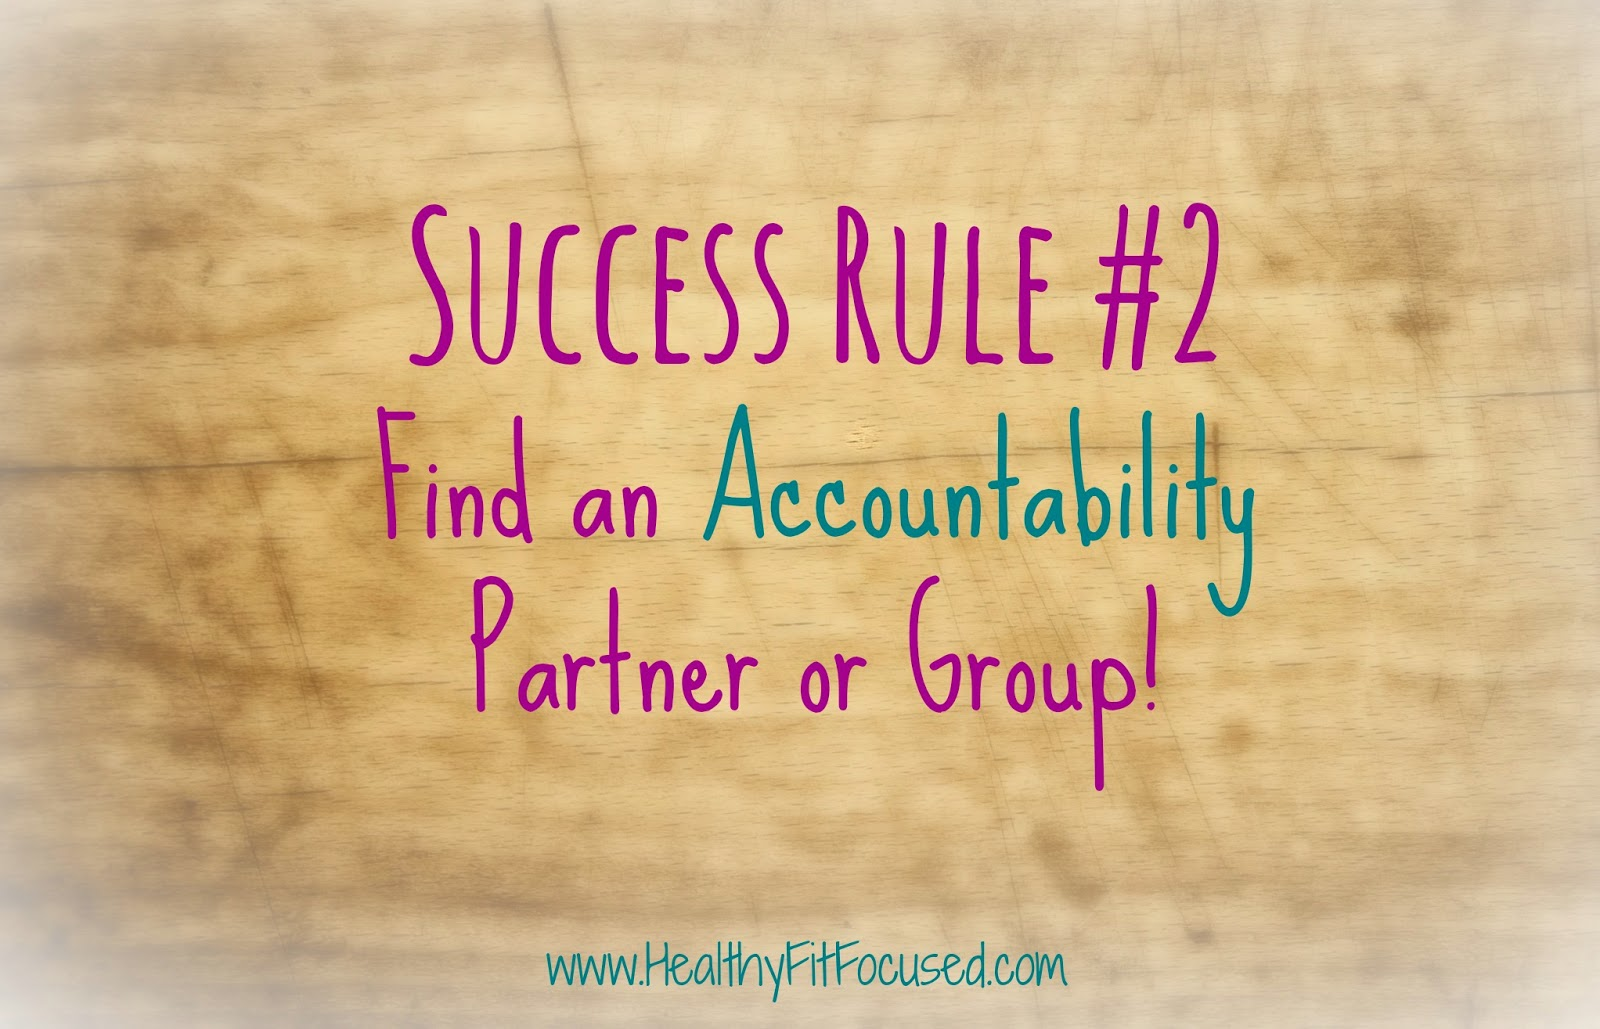 Accountability Group, www.healthyfitfocused.com